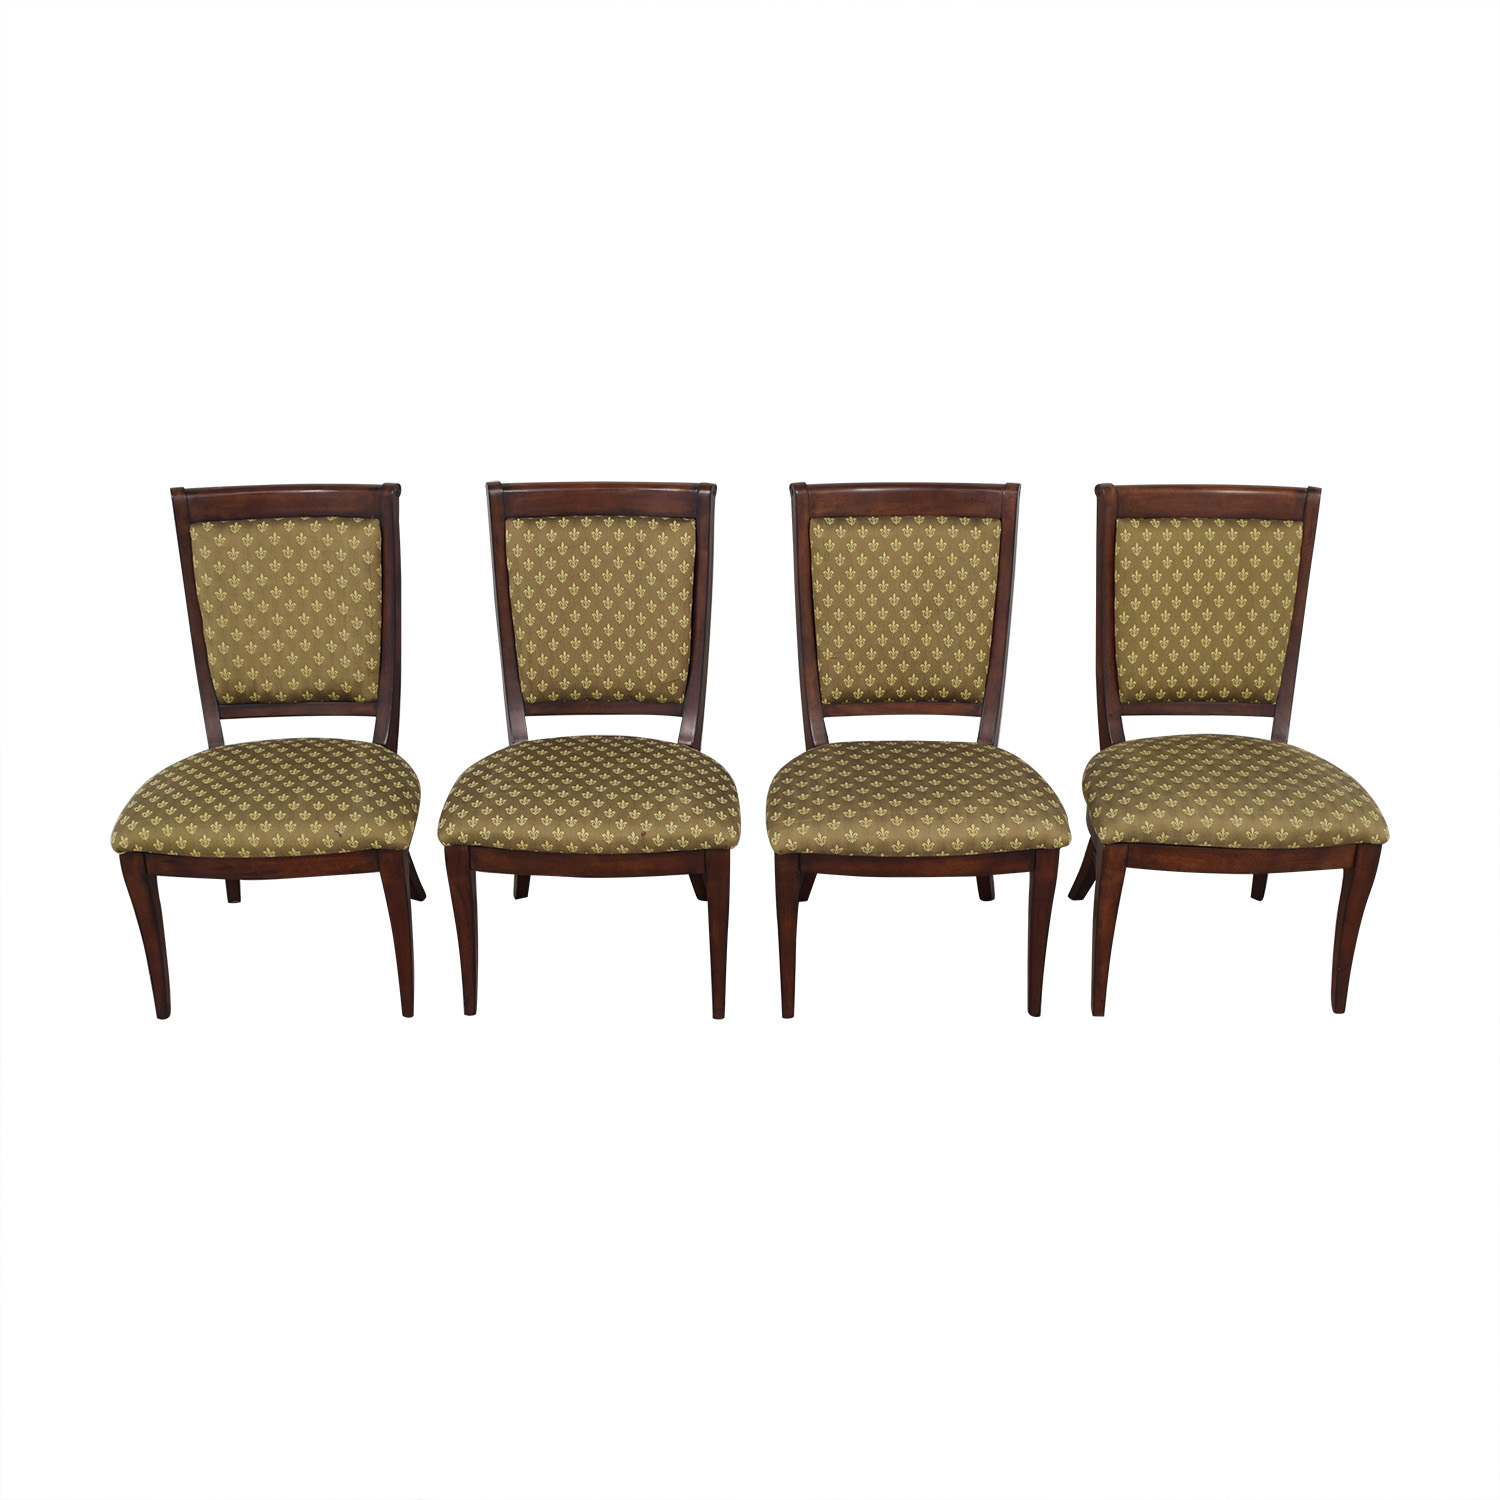 Bassett Furniture Bassett Furniture Upholstered Side Chairs discount